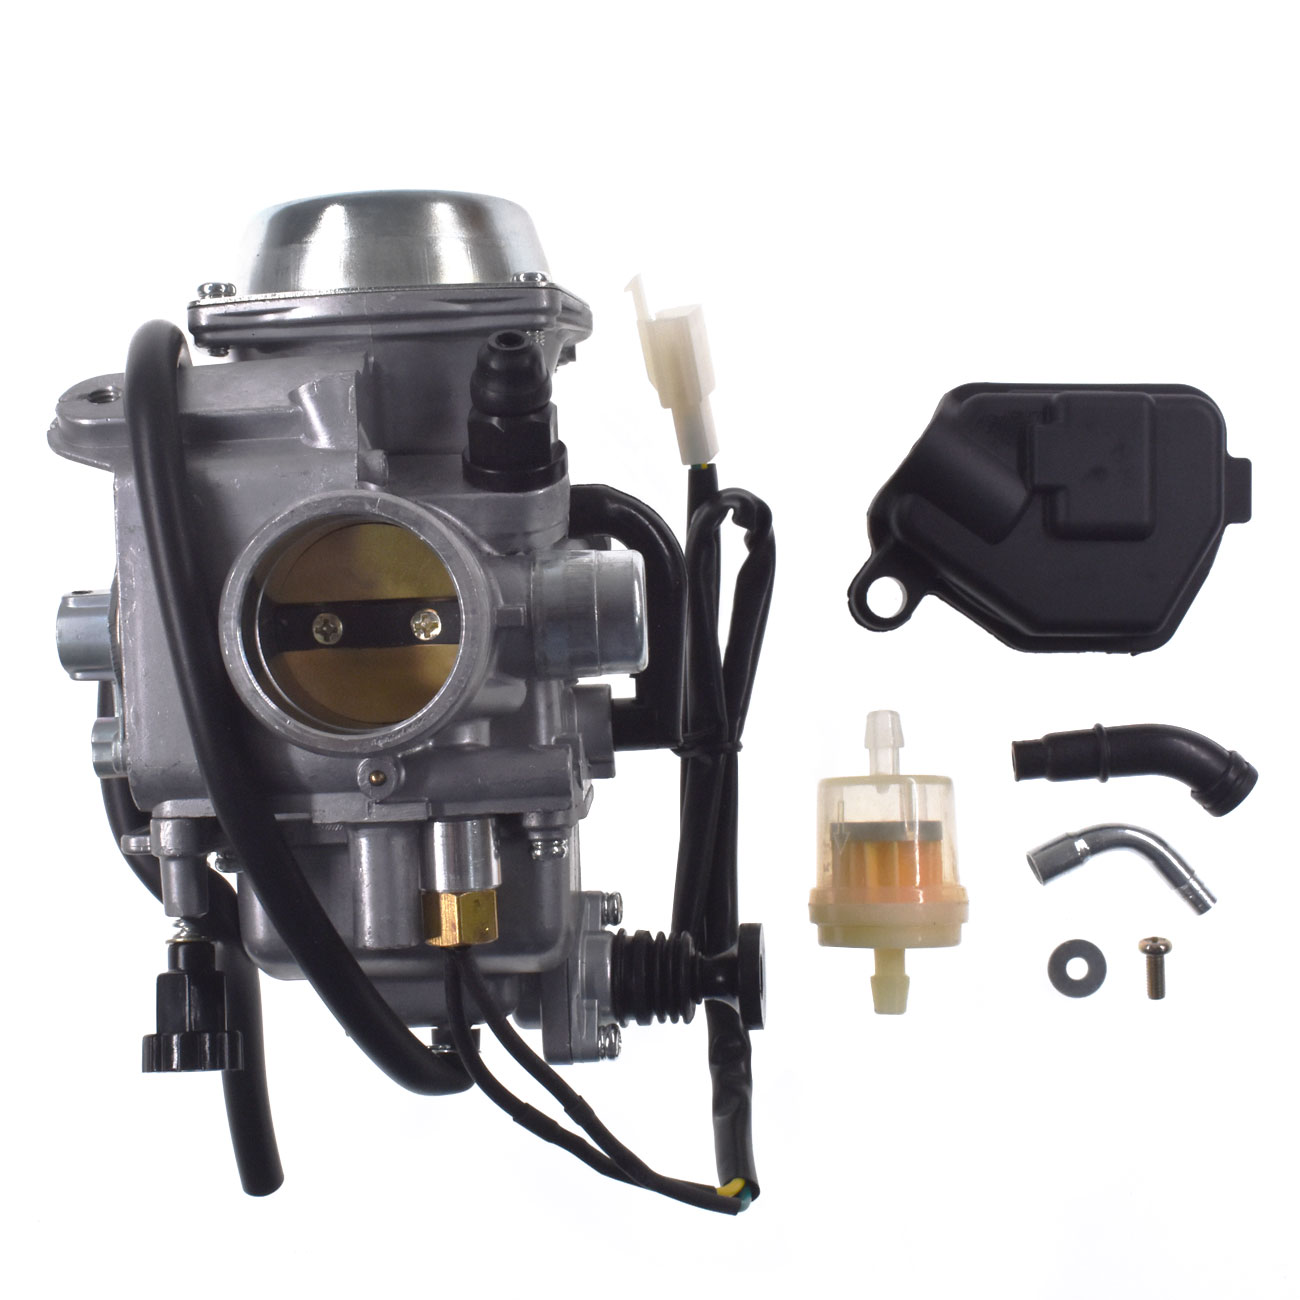 Carburetor Carb FOR Honda TRX 450 Foreman 2002 2003 2004 16100-HN0-672 black throttle base cover carburetor for honda trx350 atv carburetor trx 350 rancher 350es fe fmte tm carb 2000 2006